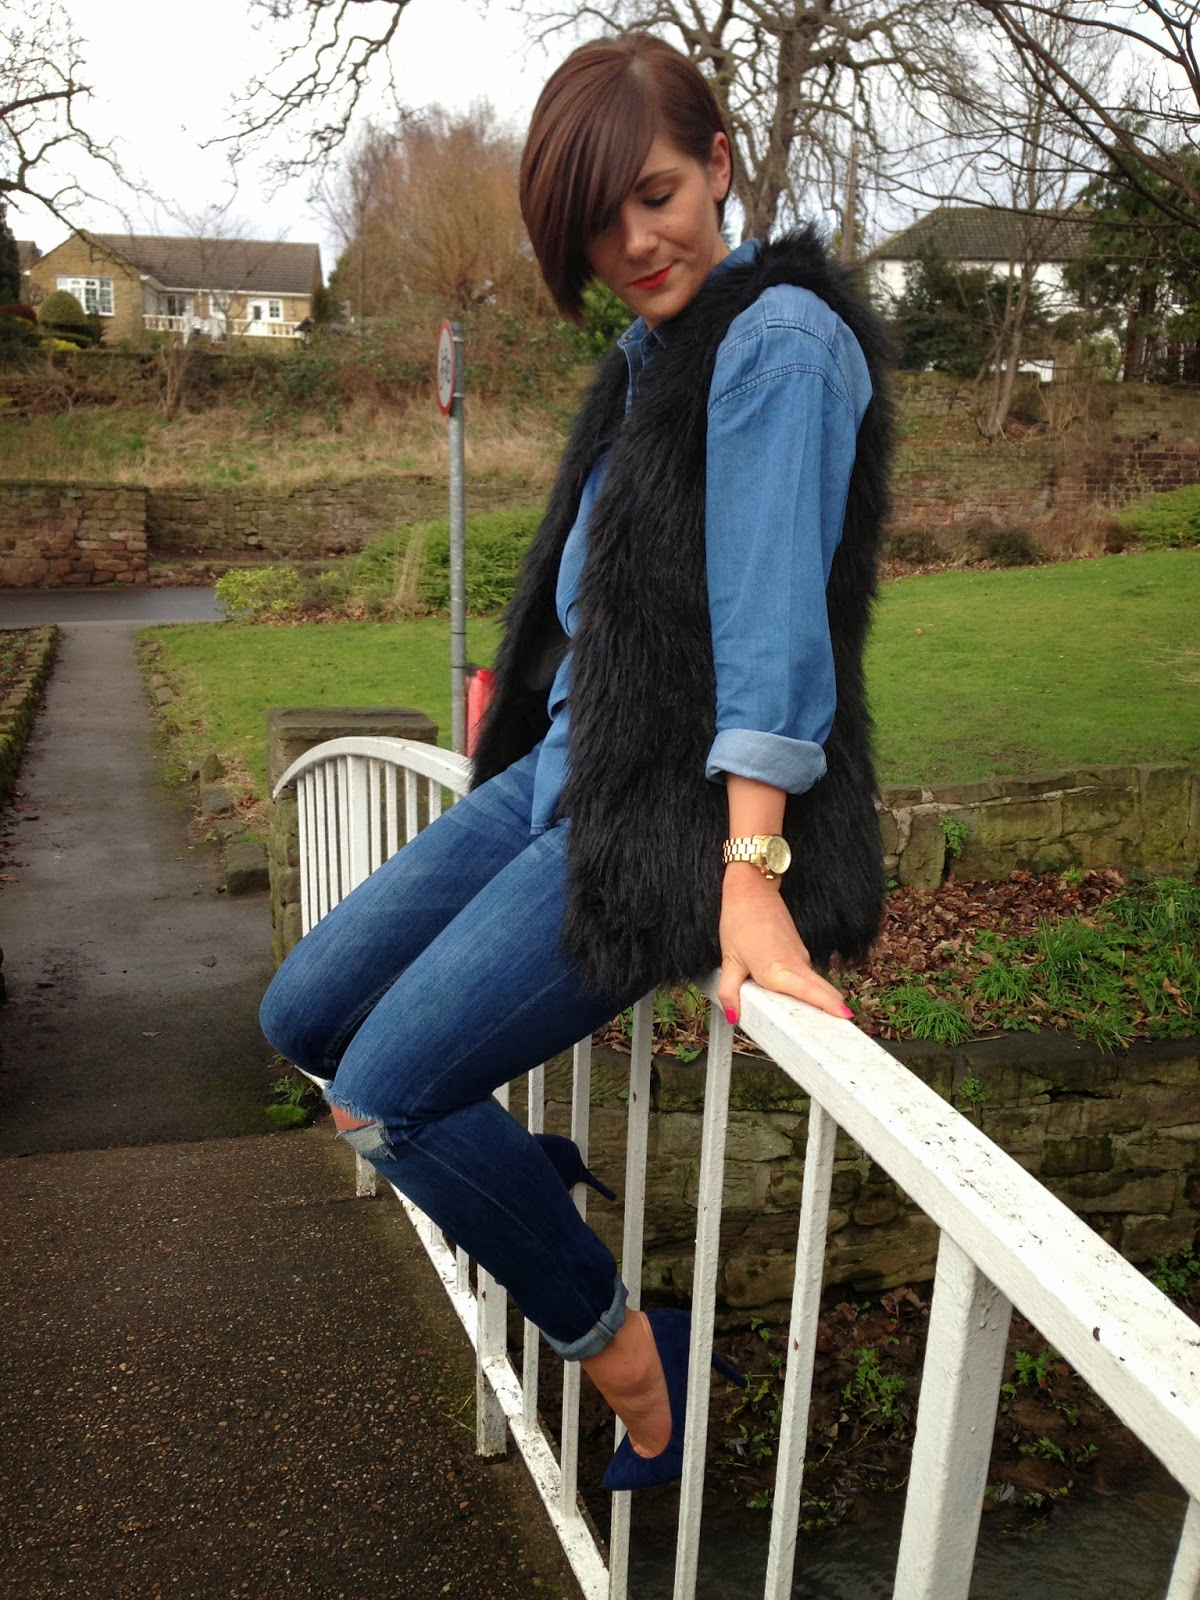 Topshop Shoes Lucy Higgins Blog Blogger Girlabouttown Girl About Town Fashion